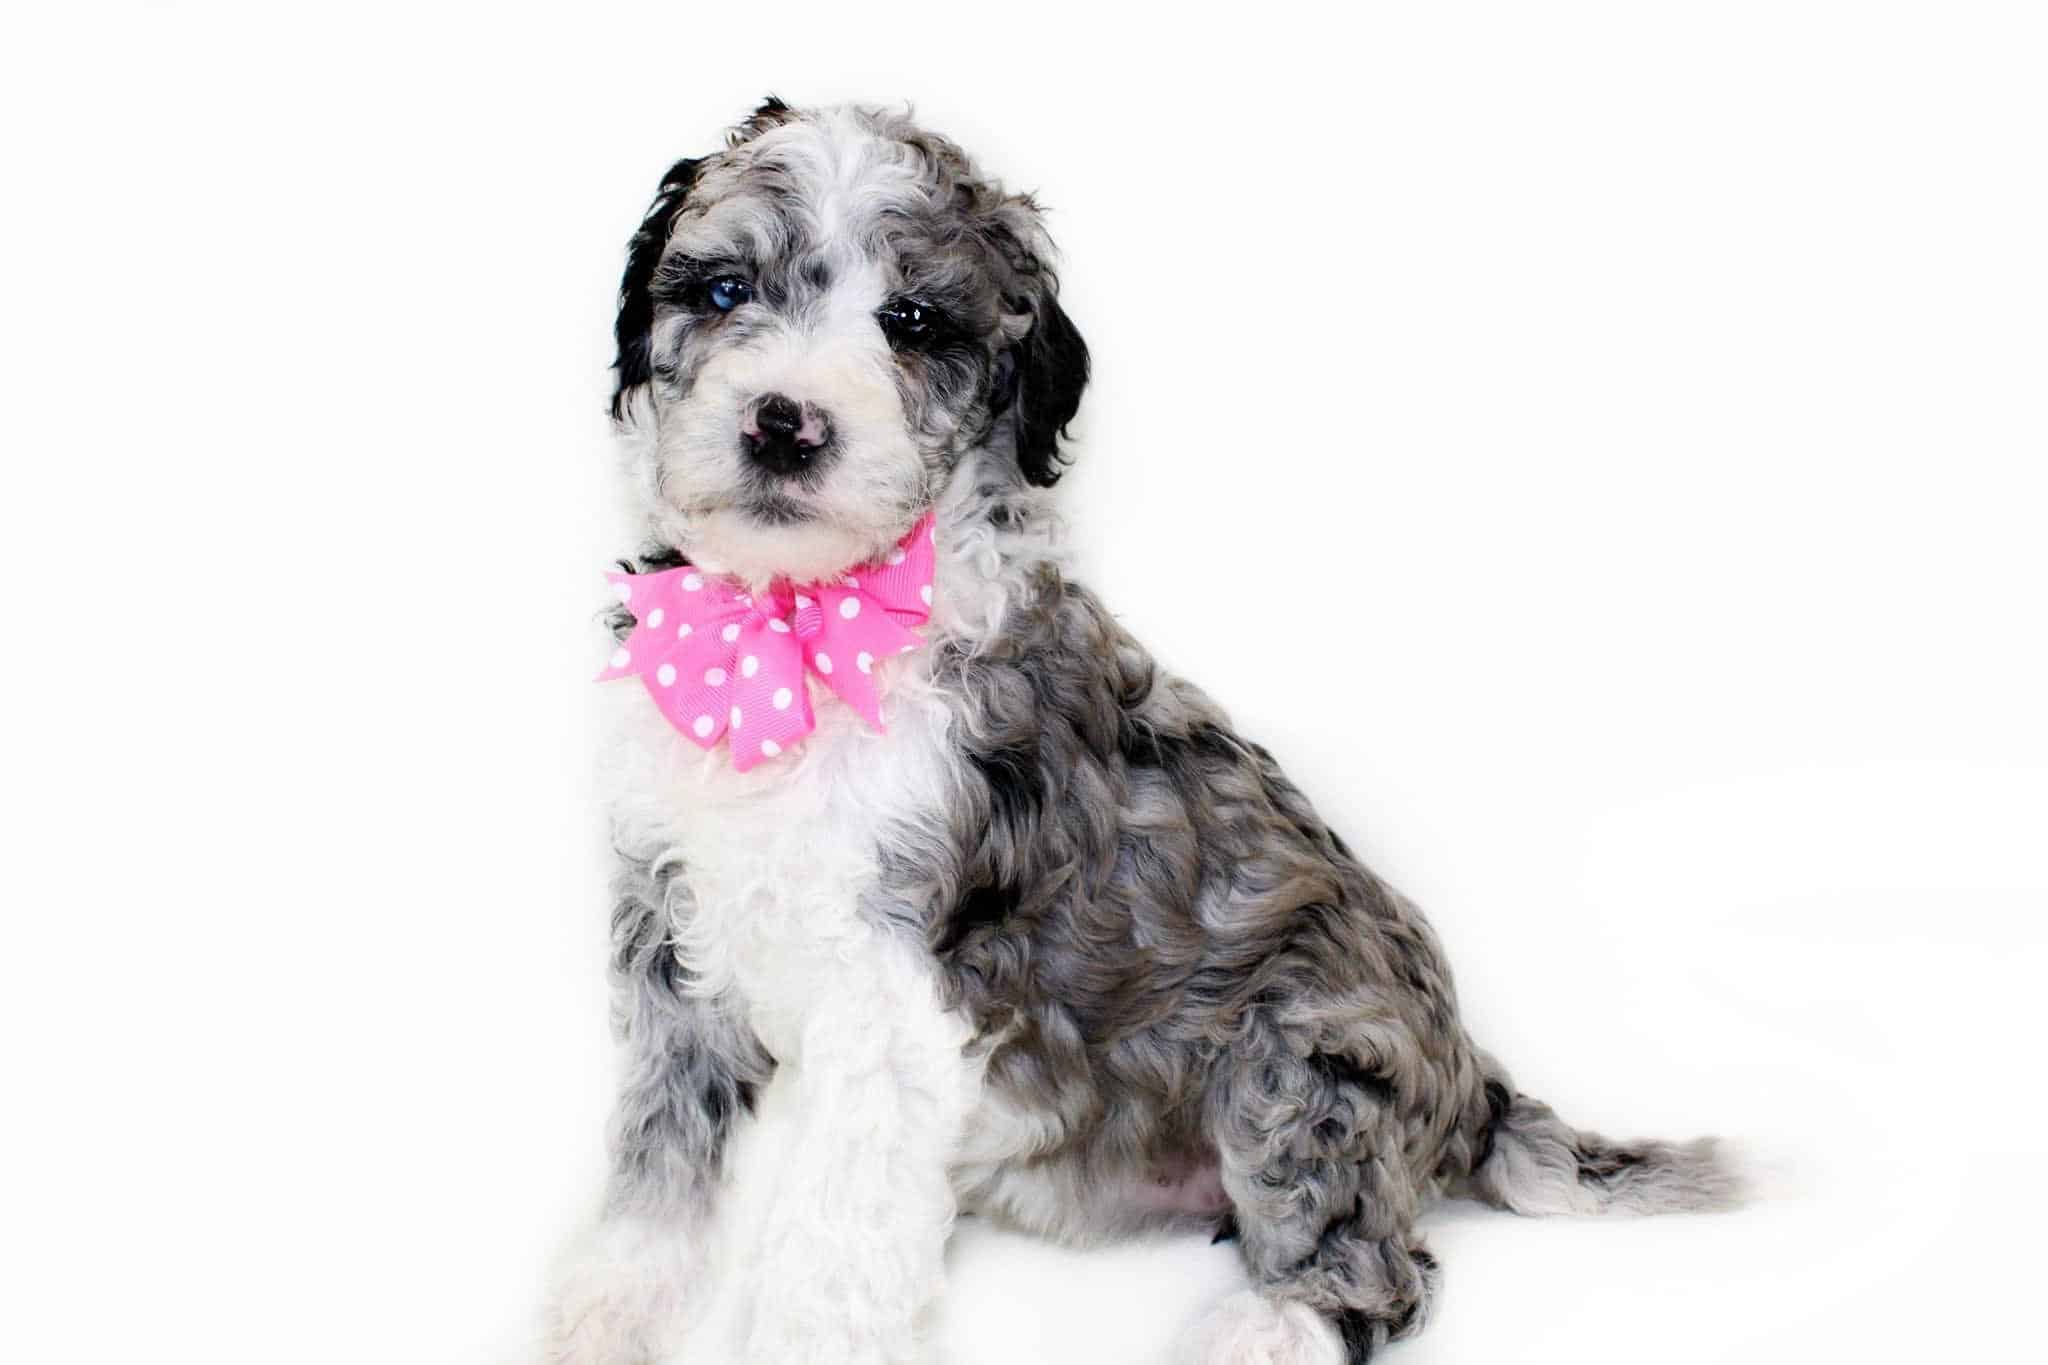 merle sheepadoodle, sheepadoodle, golden sheepadoodle, mini sheepadoodle, mini golden sheepadoodle, sheepadoodle puppies near me, sheepadoodle puppies for sale